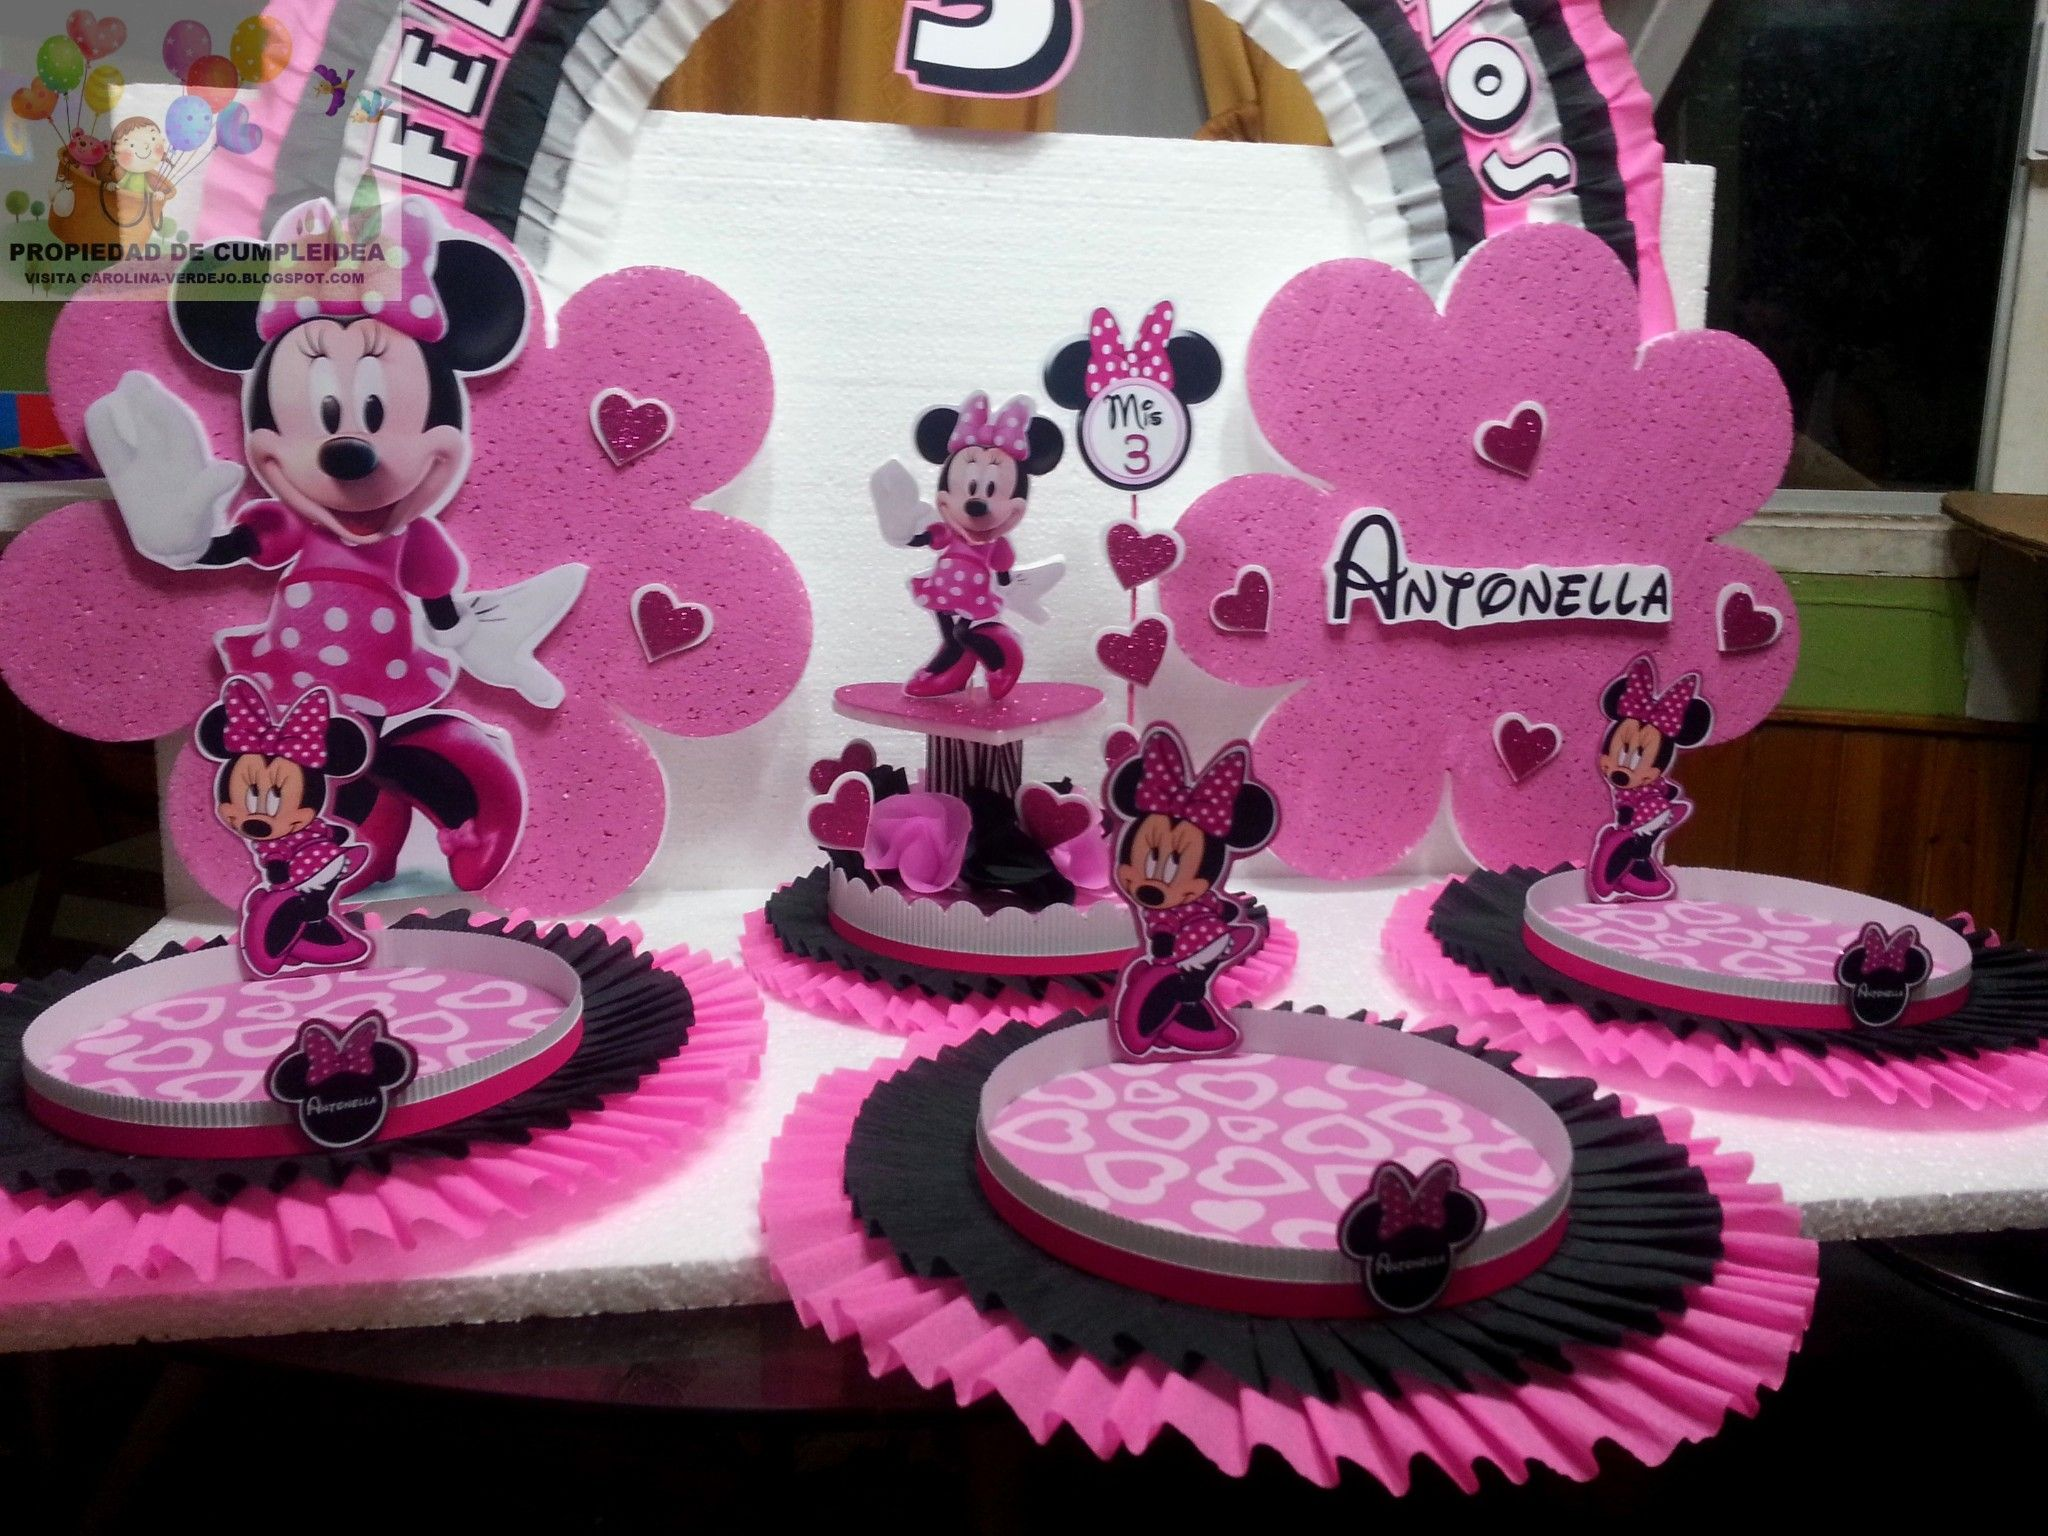 Bandejas Decoracion Salon Decoracion De Fiestas Infantiles Minnie Mouse 1 Minnie